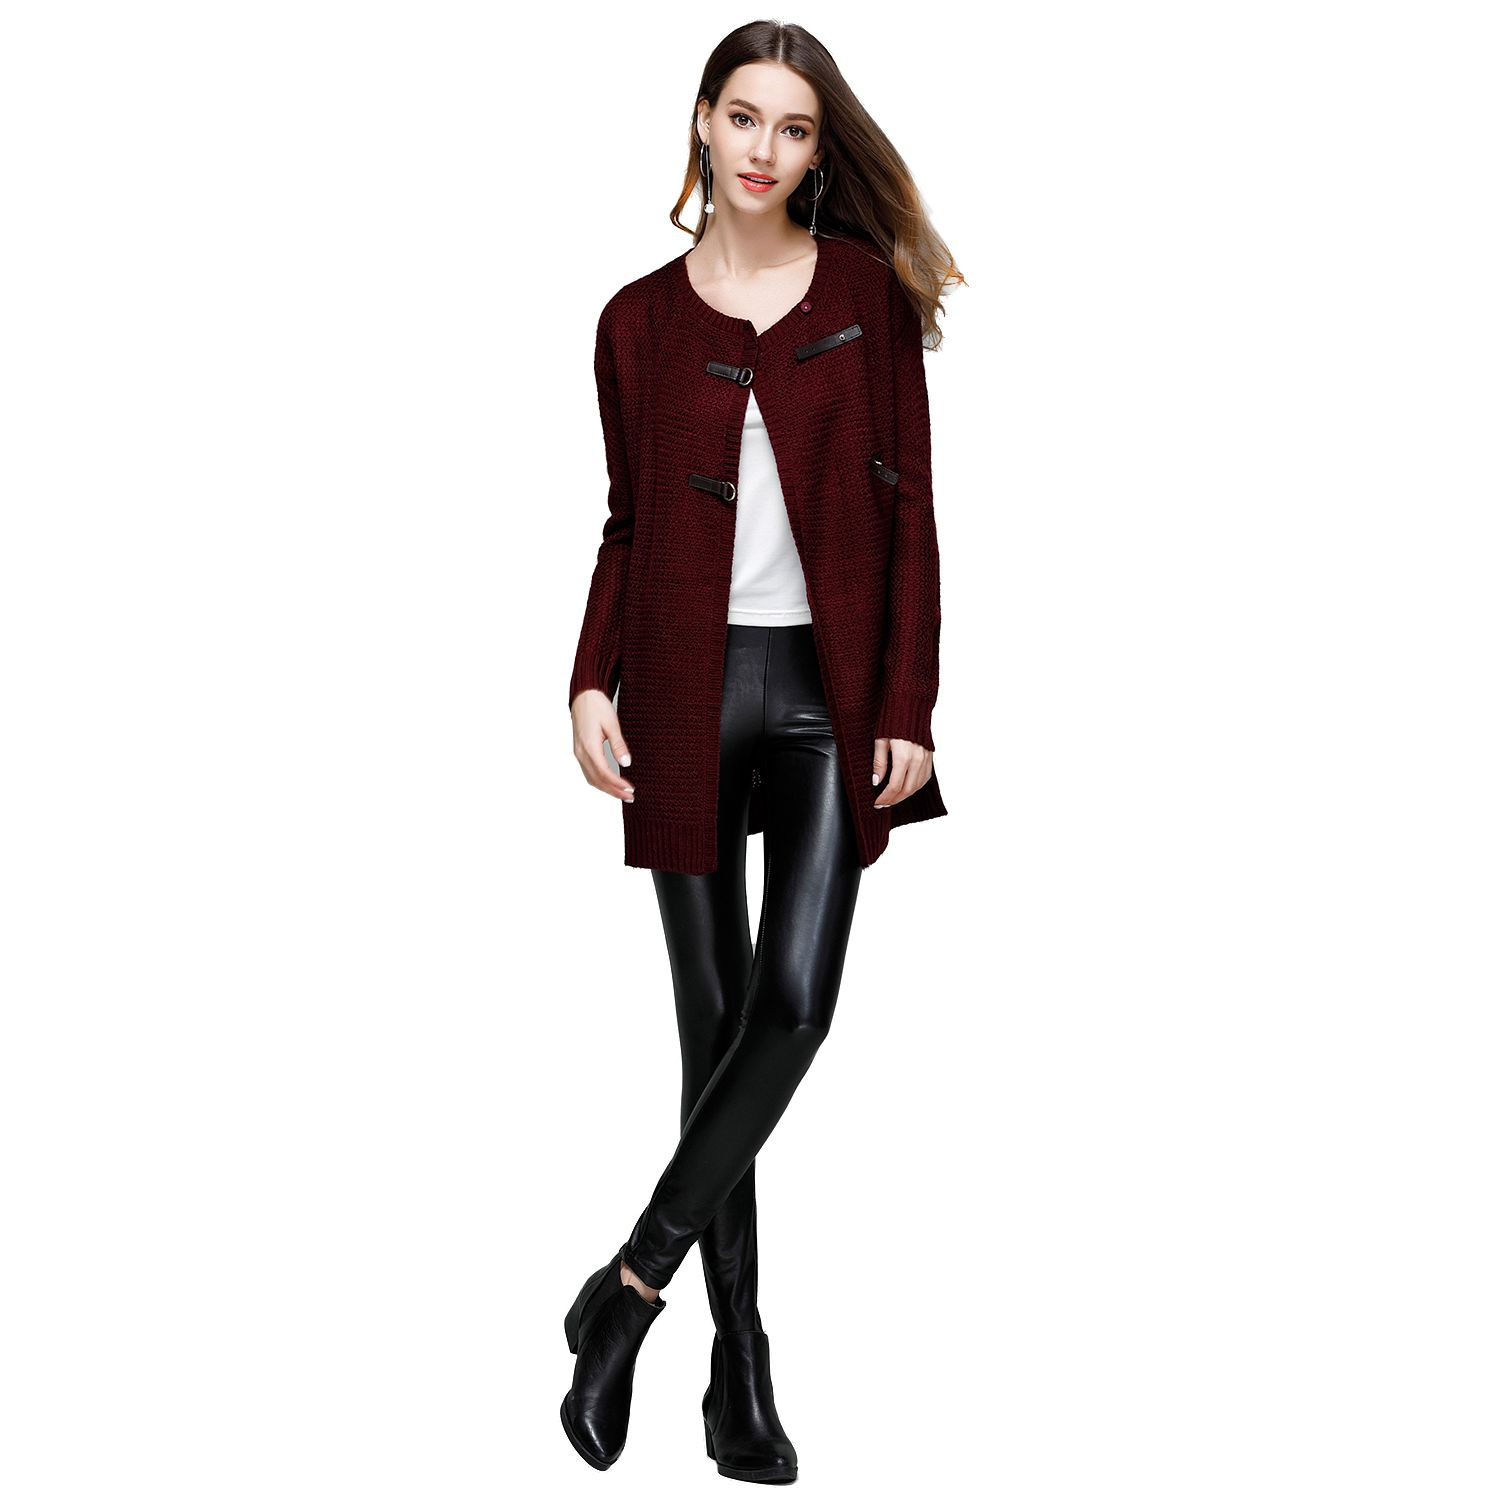 New Womens Elegant Spring Autumn New Fashion Knitwear Long Solid Color Button Cardigans O-Neck Long Sleeve Open Stitch Sweat ...